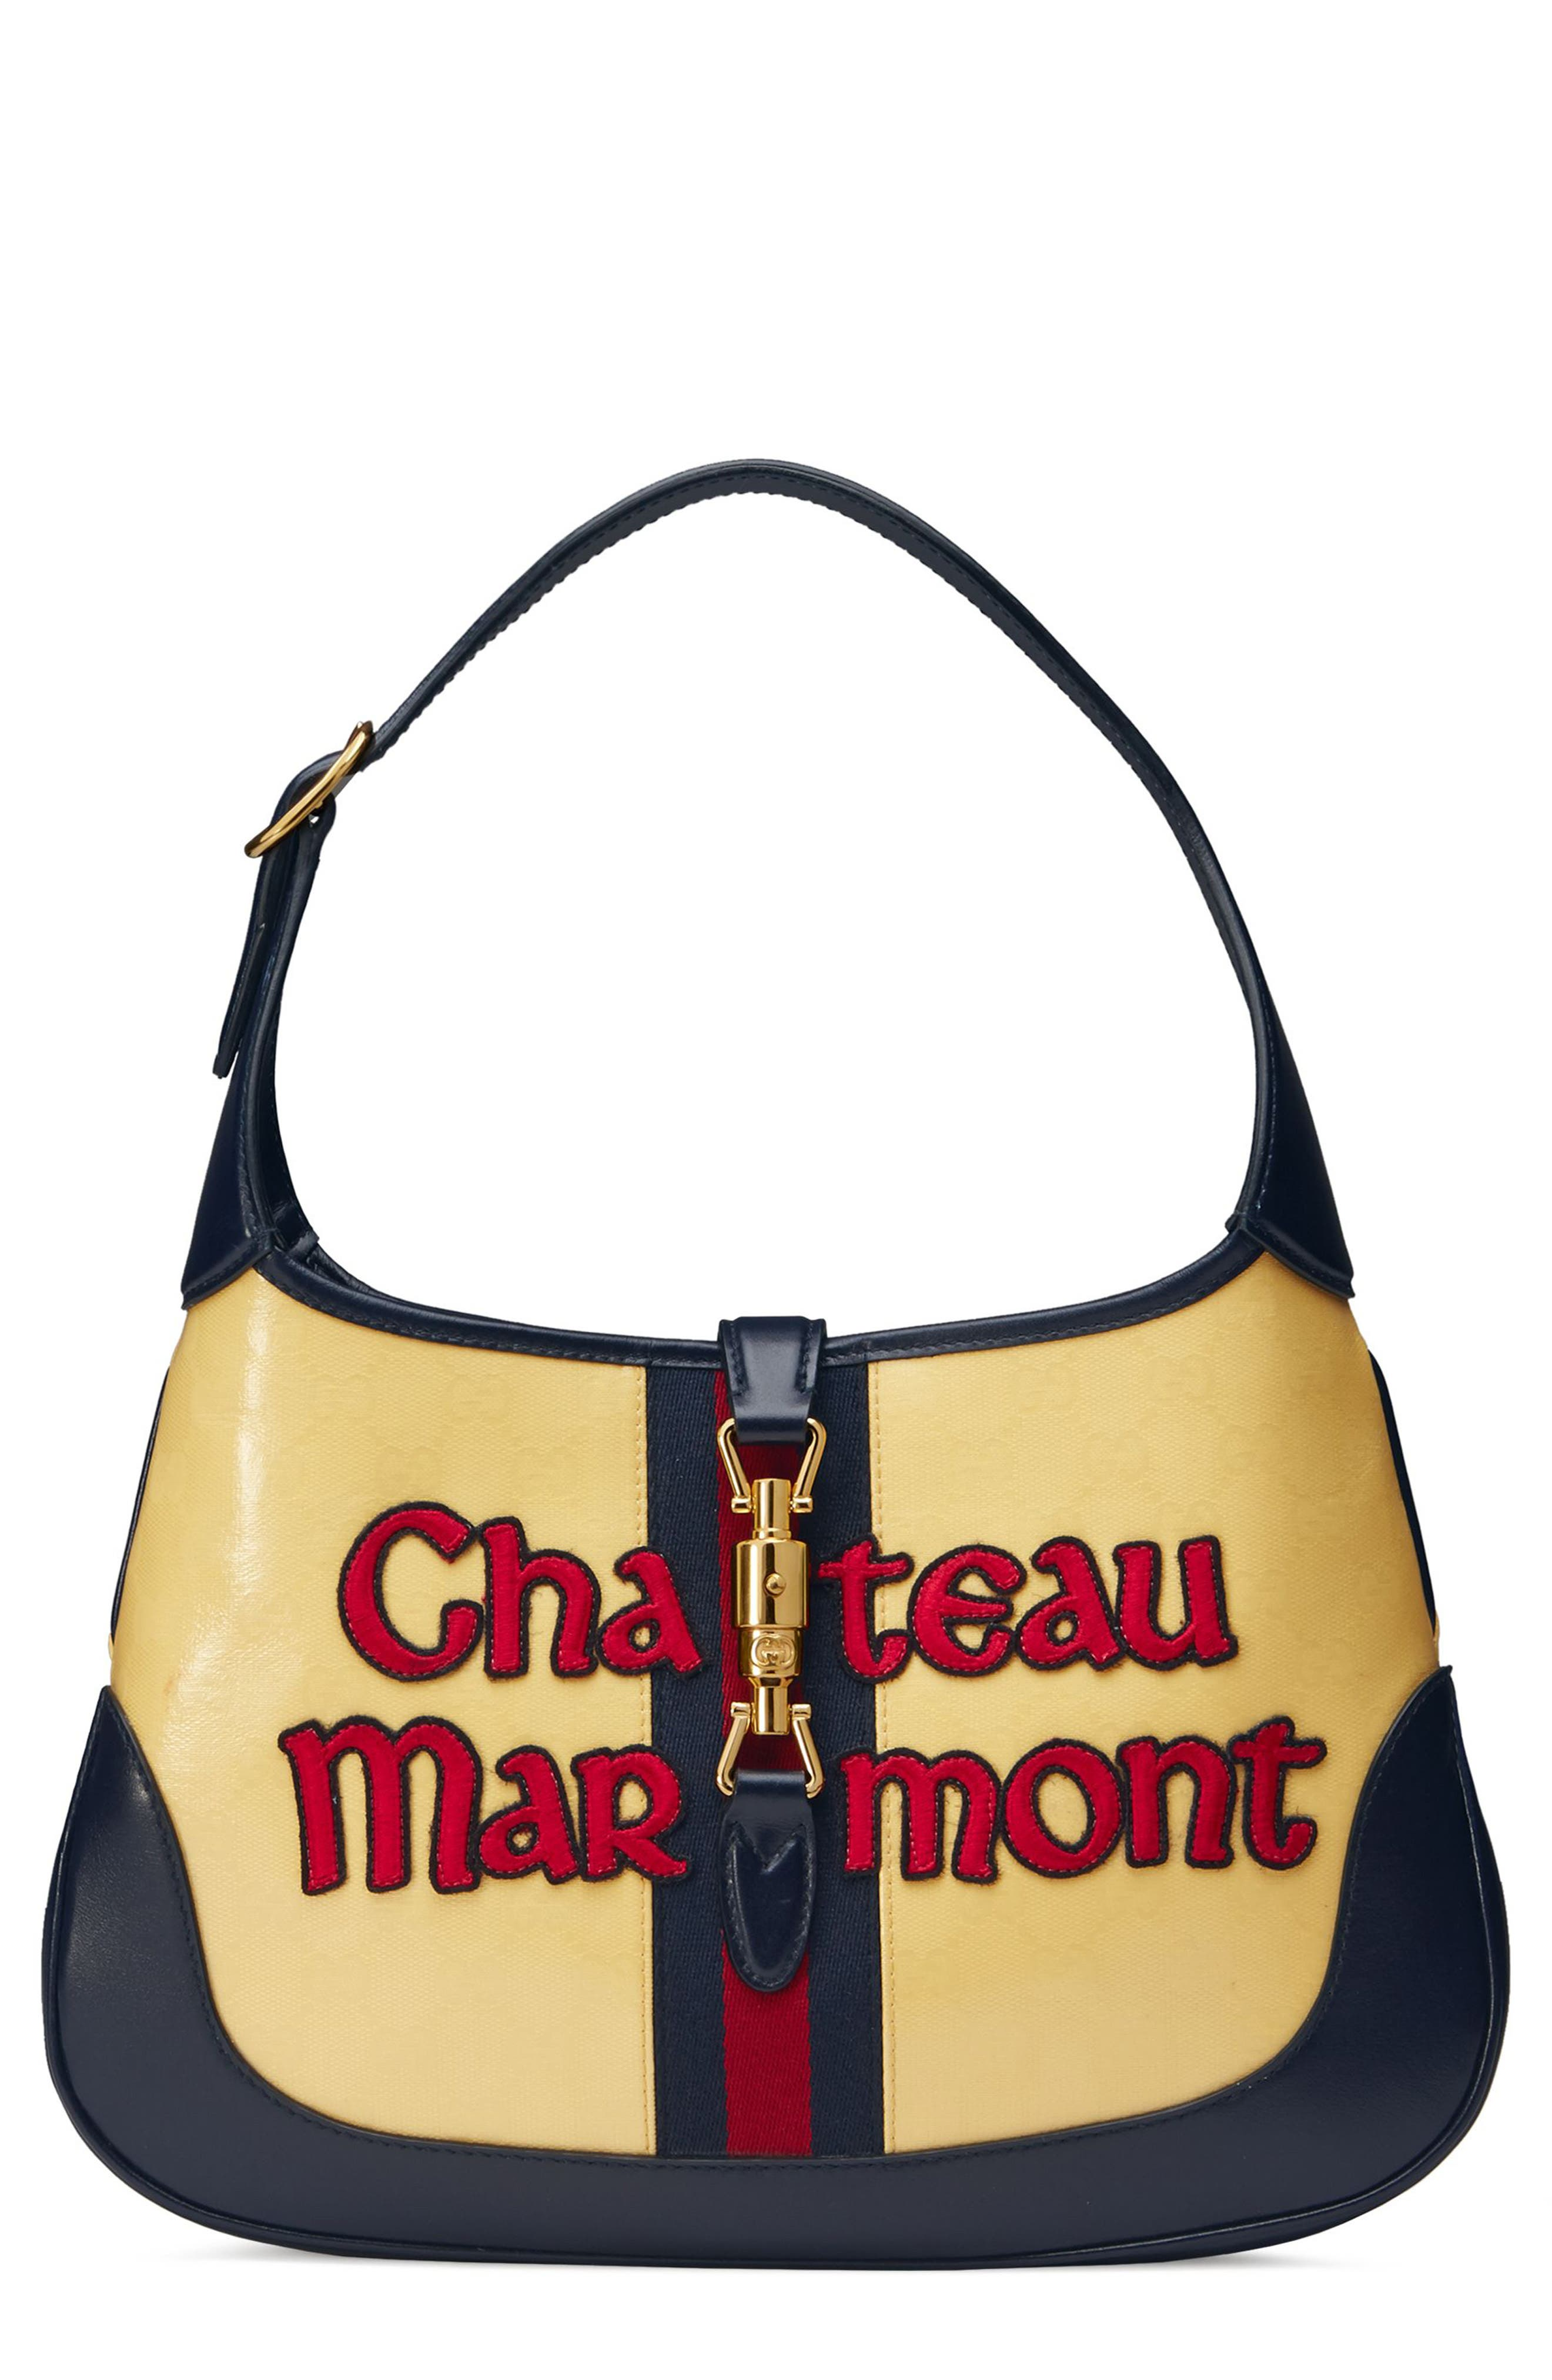 Medium Jackie Chateau Marmont GG Hobo,                         Main,                         color, STRAW YELLOW/ BLU/ RED